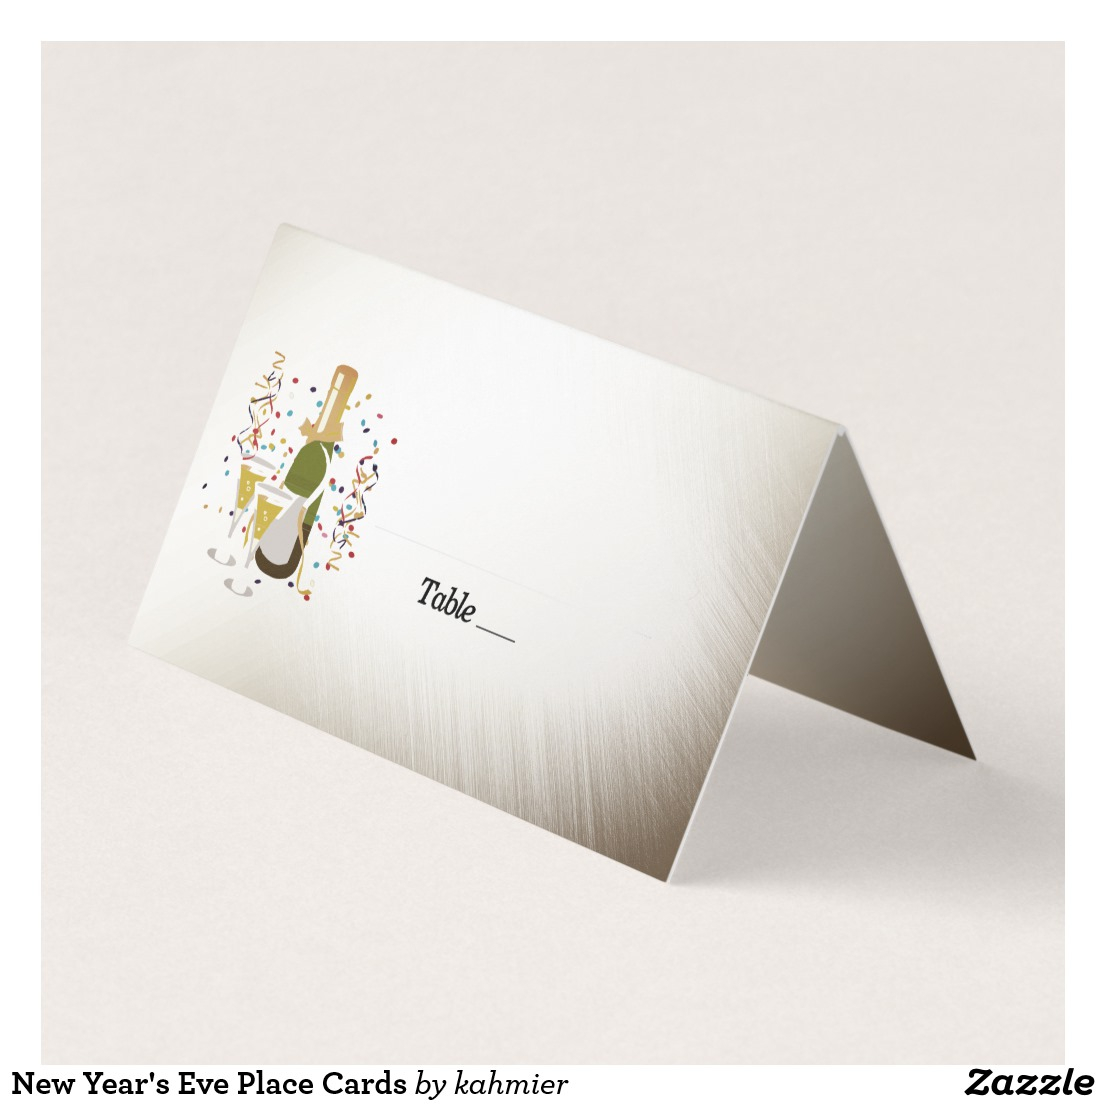 New Year's Eve Place Cards